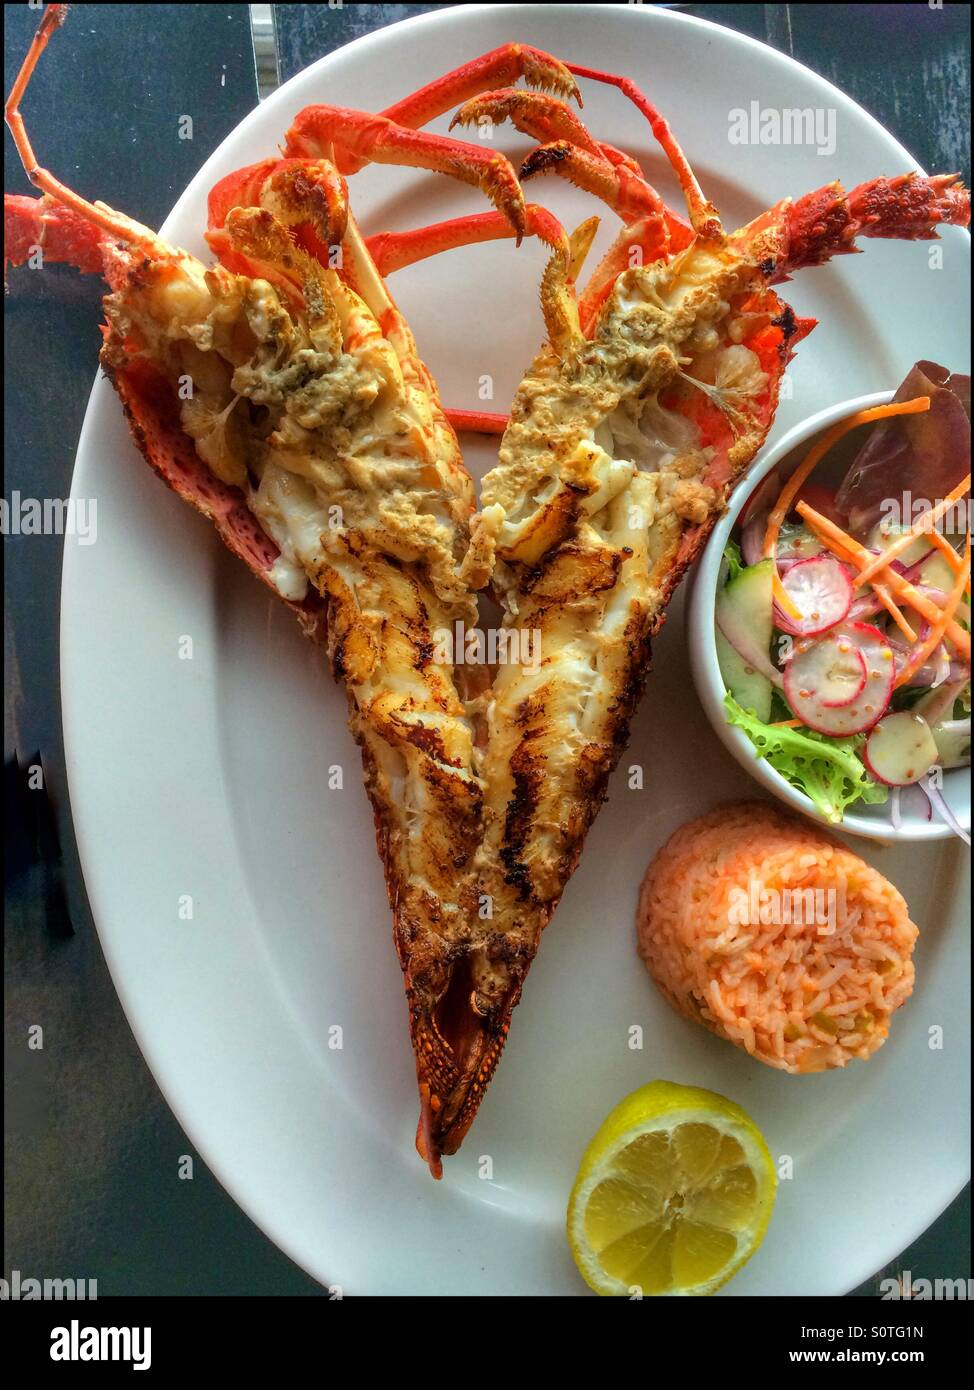 Cape rock lobster with rice and salad. - Stock Image